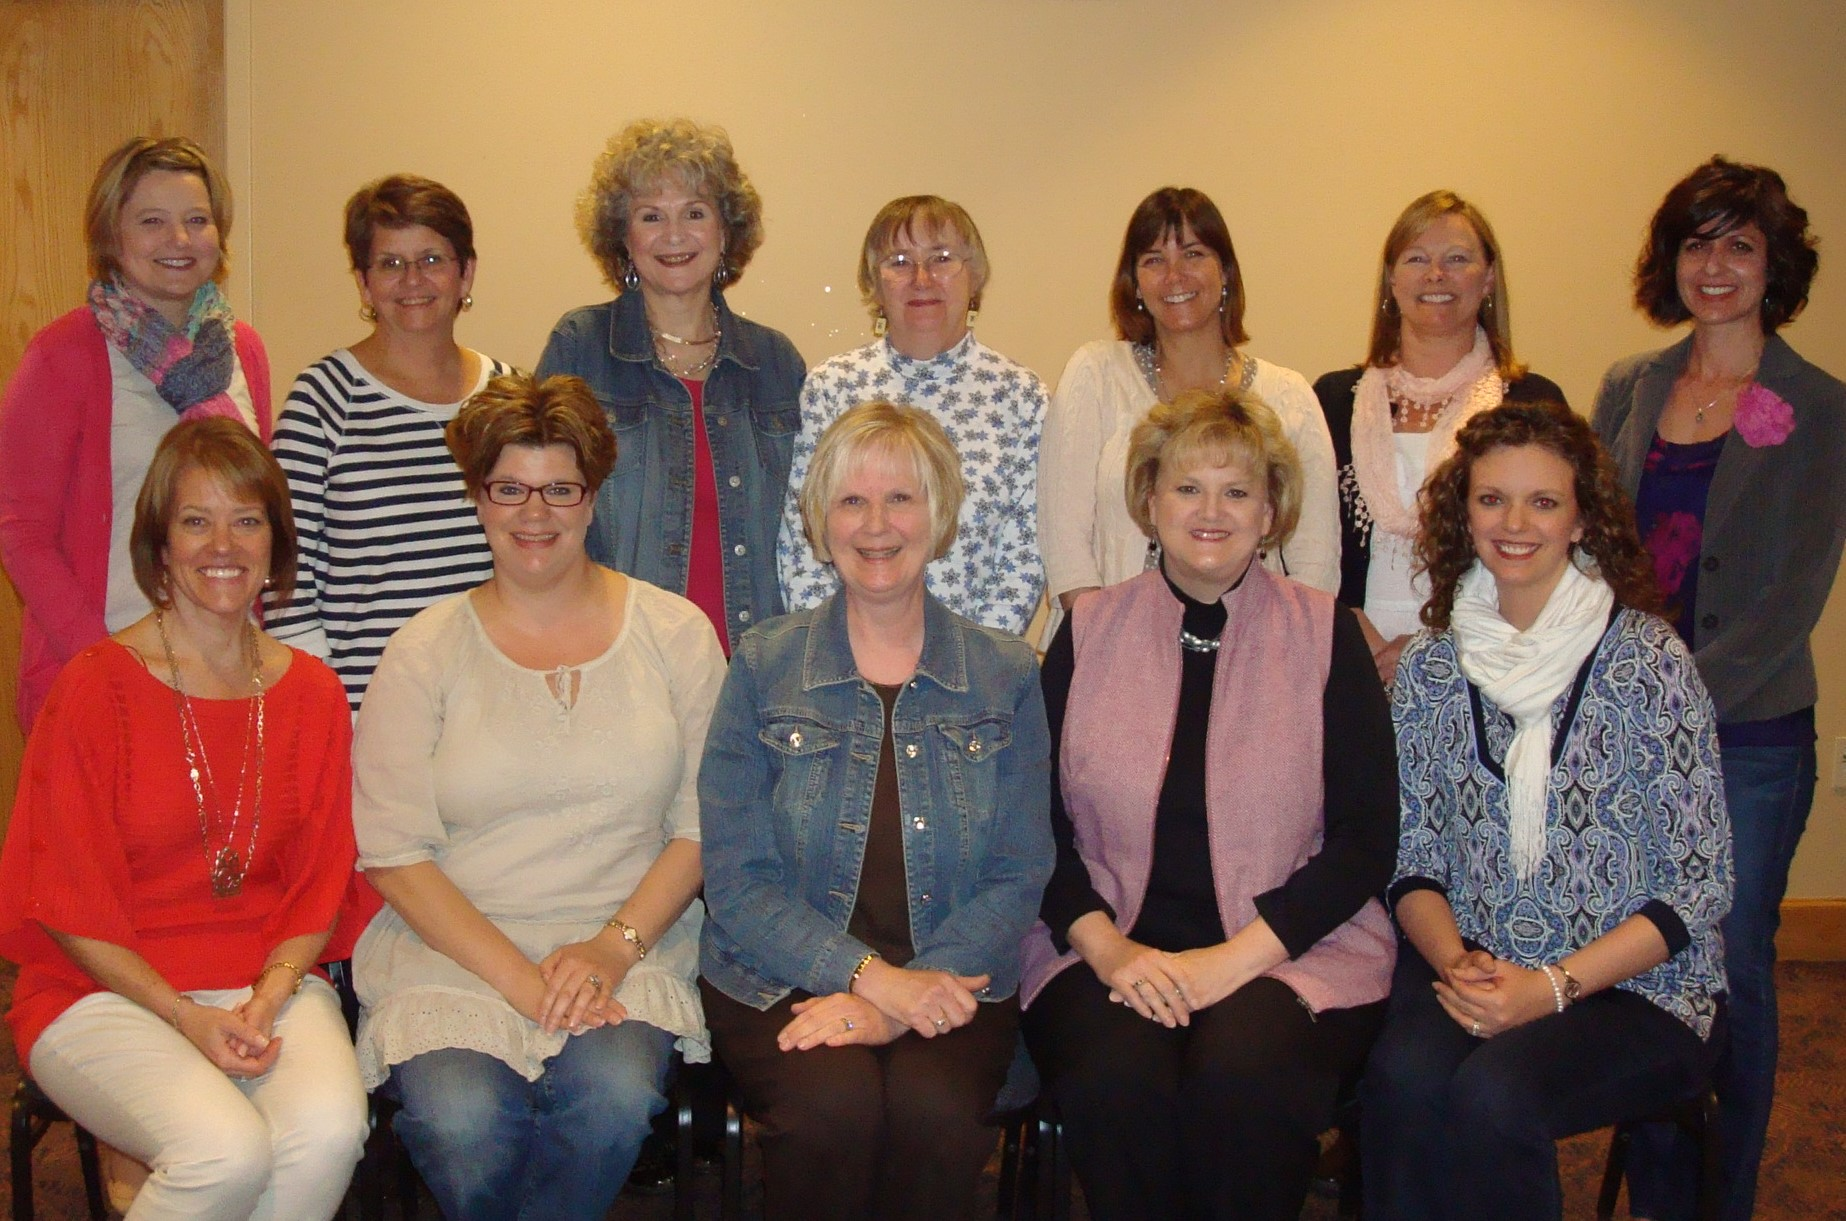 Linda Edwards' (back row, center) little yes led to great rewards as a serving member of WOW -- Women for Oppressed Women.